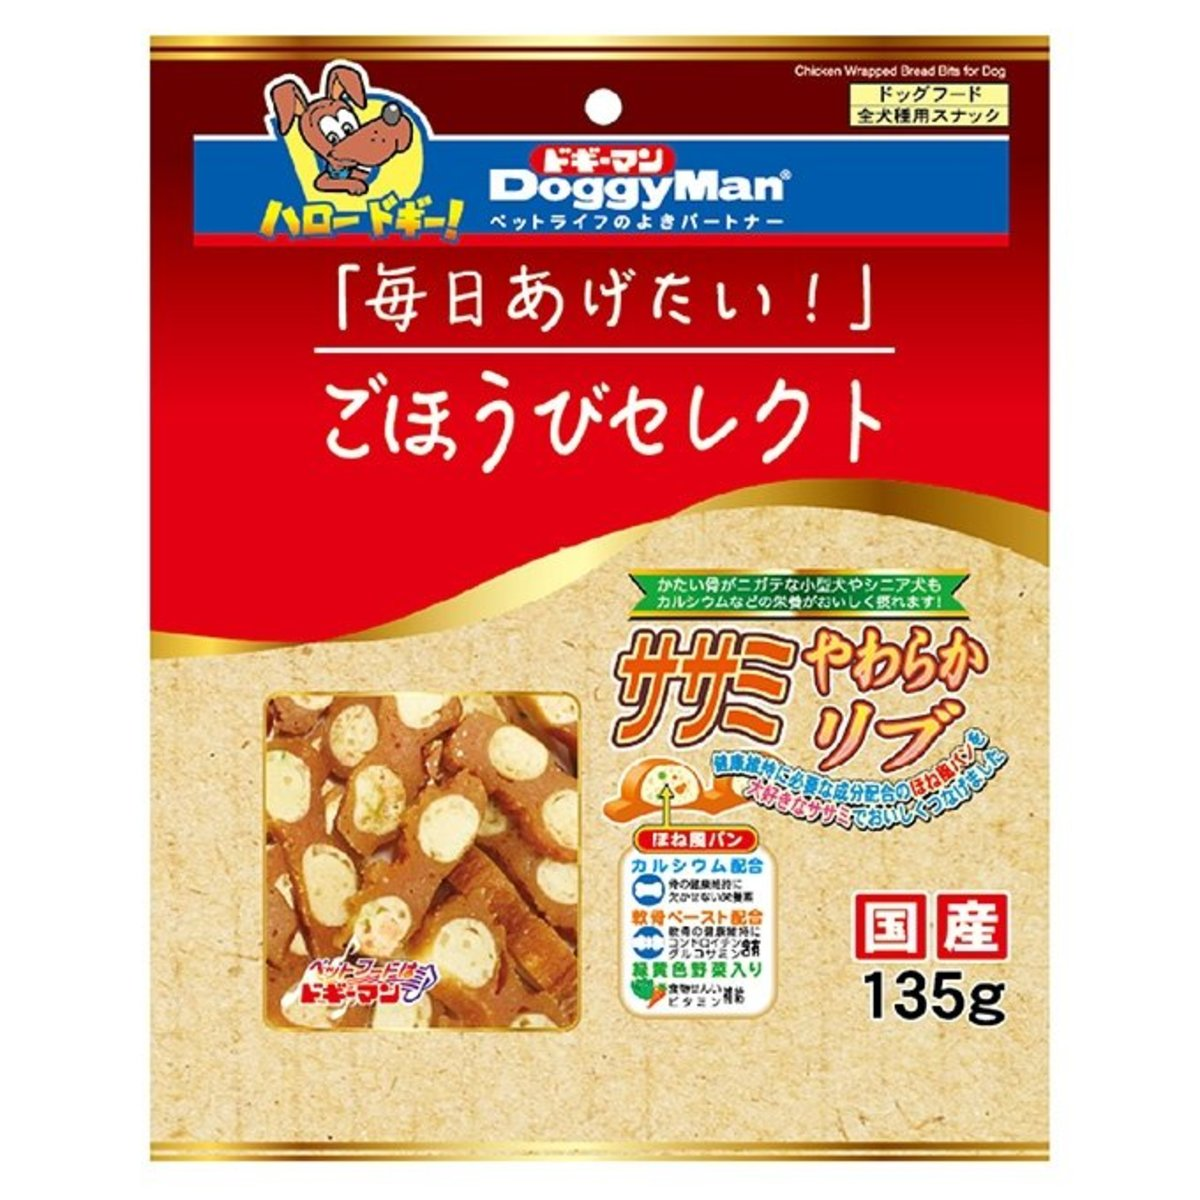 Daily Select Chicken Wrapped Bread Bits (135g) #82189 B6